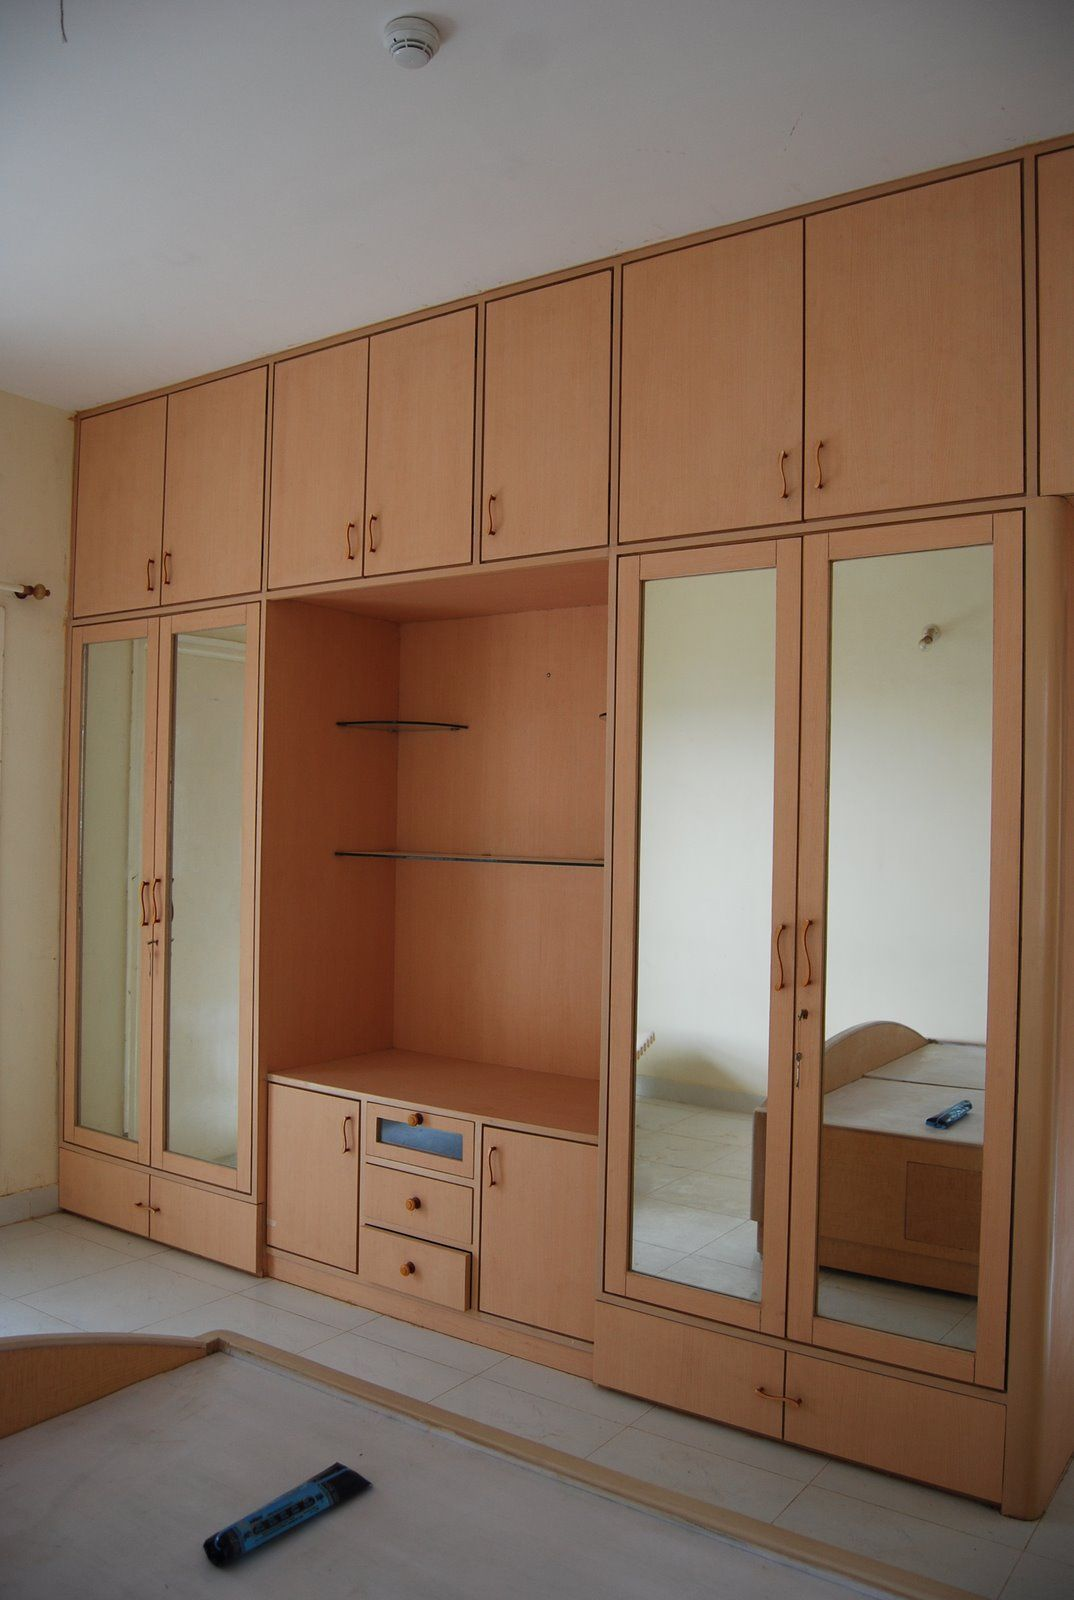 Best Bedroom Small Bedroom Design Ideas On A Budget Wooden 400 x 300